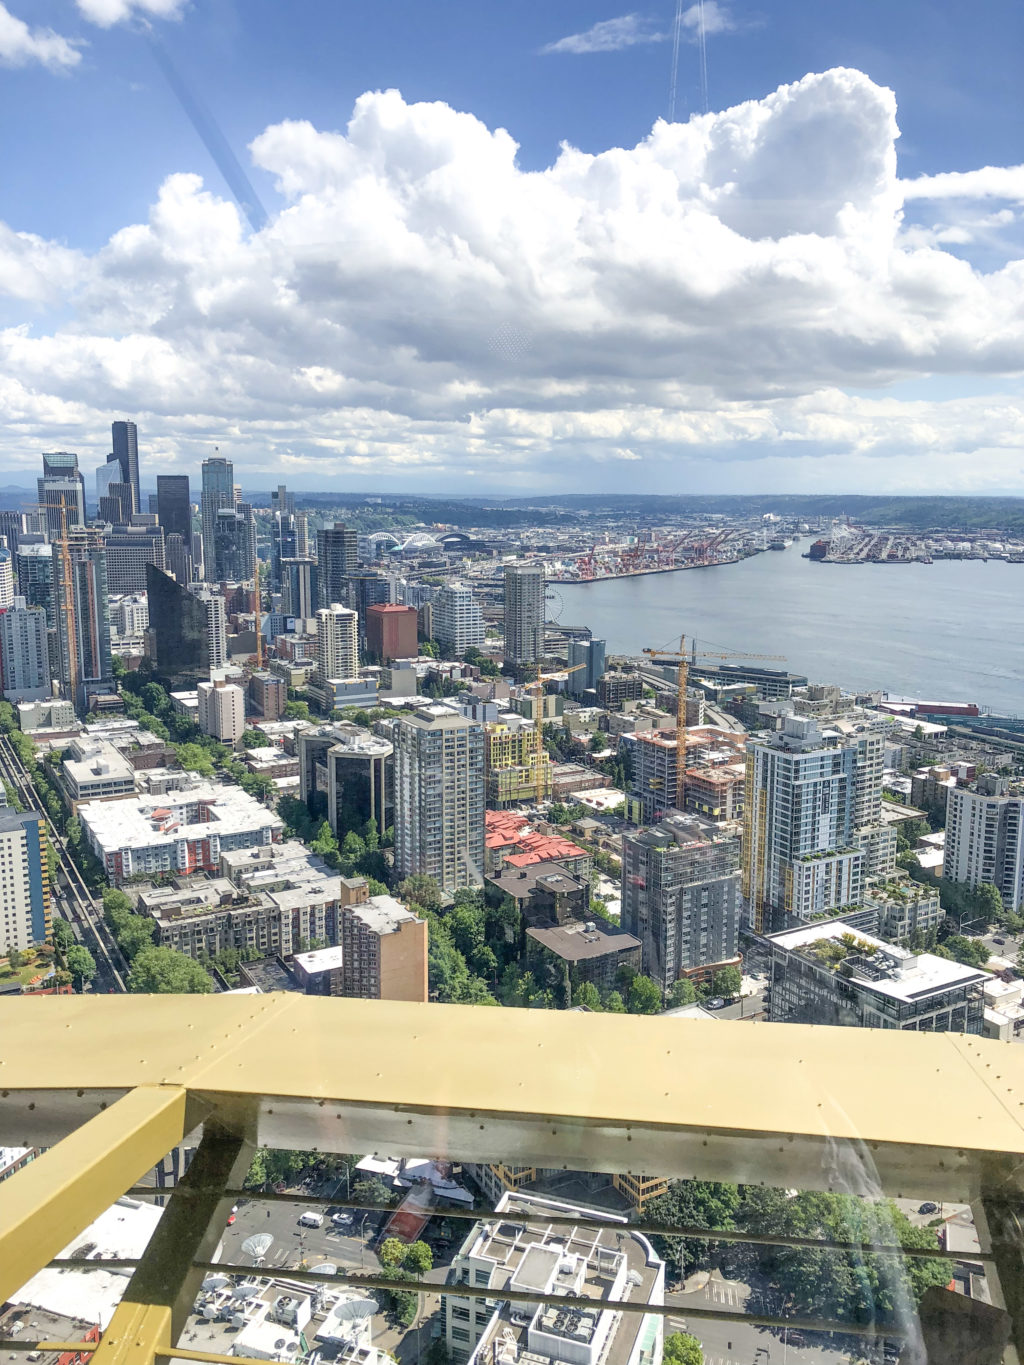 Must see Seattle attraction - view from the Space Needle